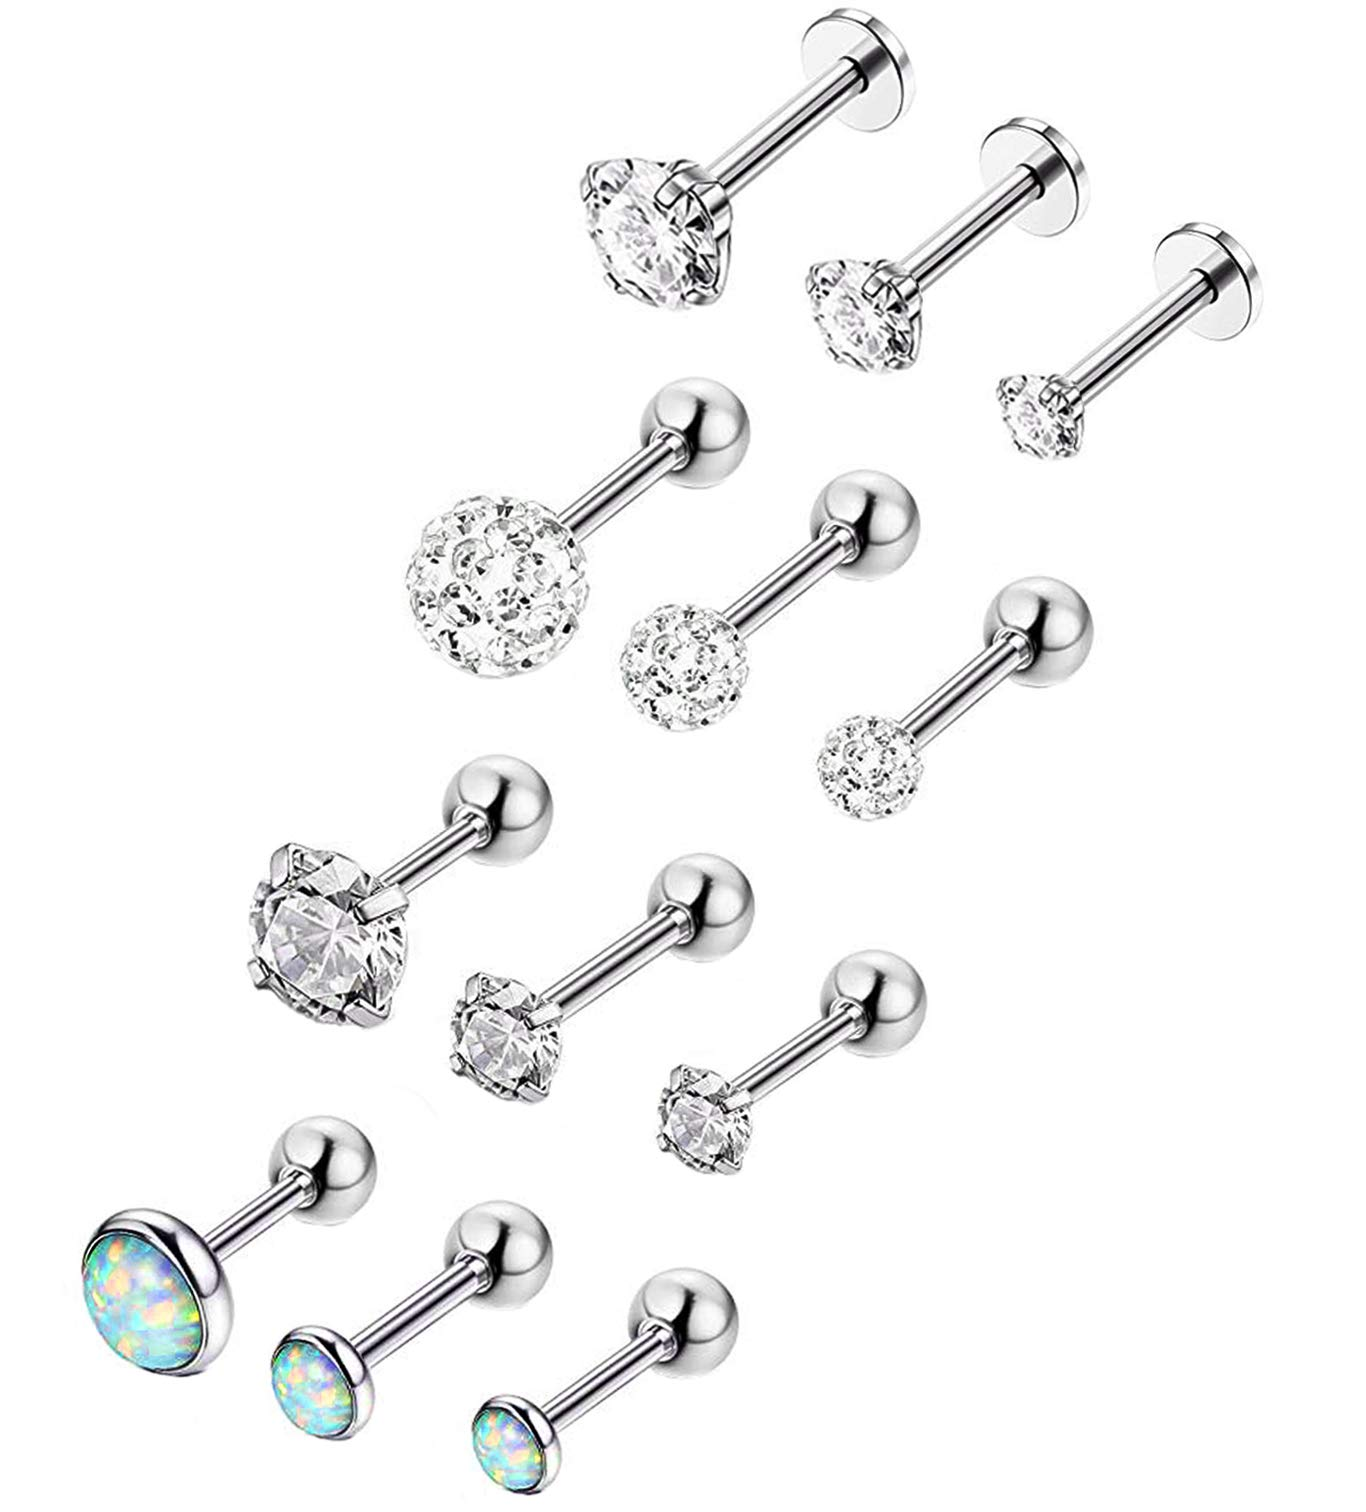 YOVORO 12Pcs 16G 316L Stainless Steel Stud Earrings for Women Cartiliage Earring Tragus Helix Piercing Created-Opal 3/4/5MM by YOVORO